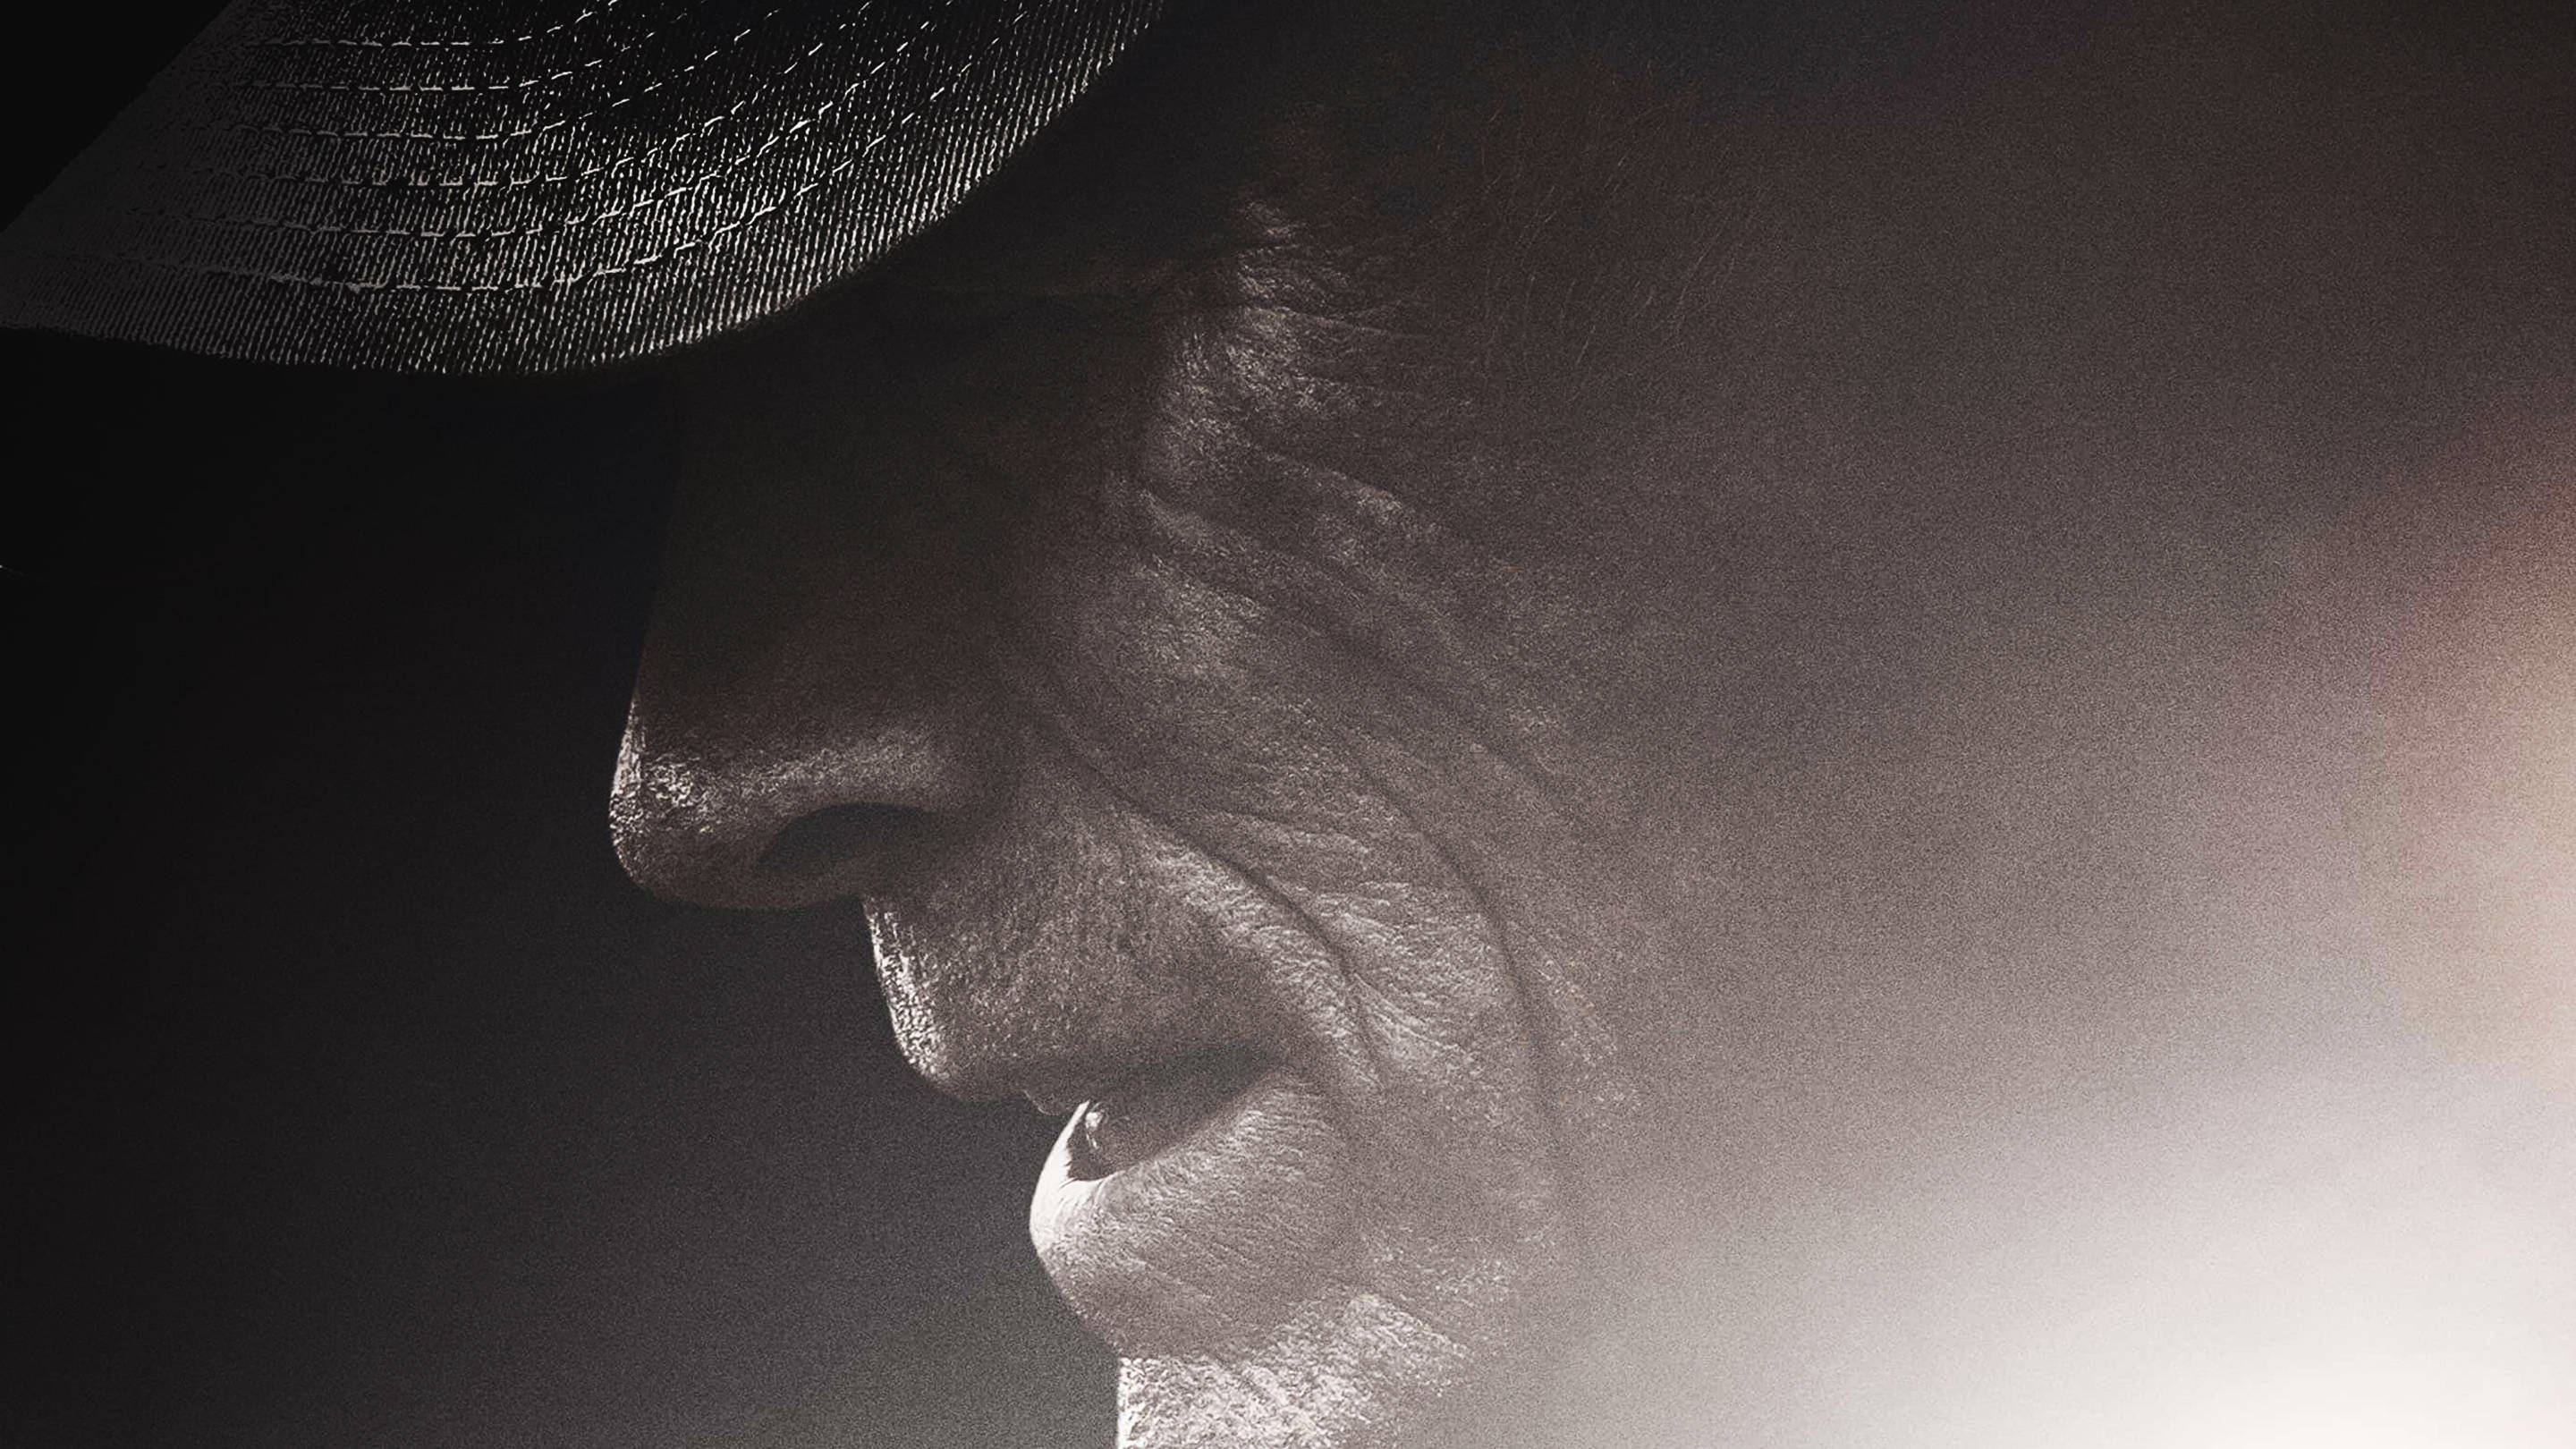 Clint Eastwood's The Mule